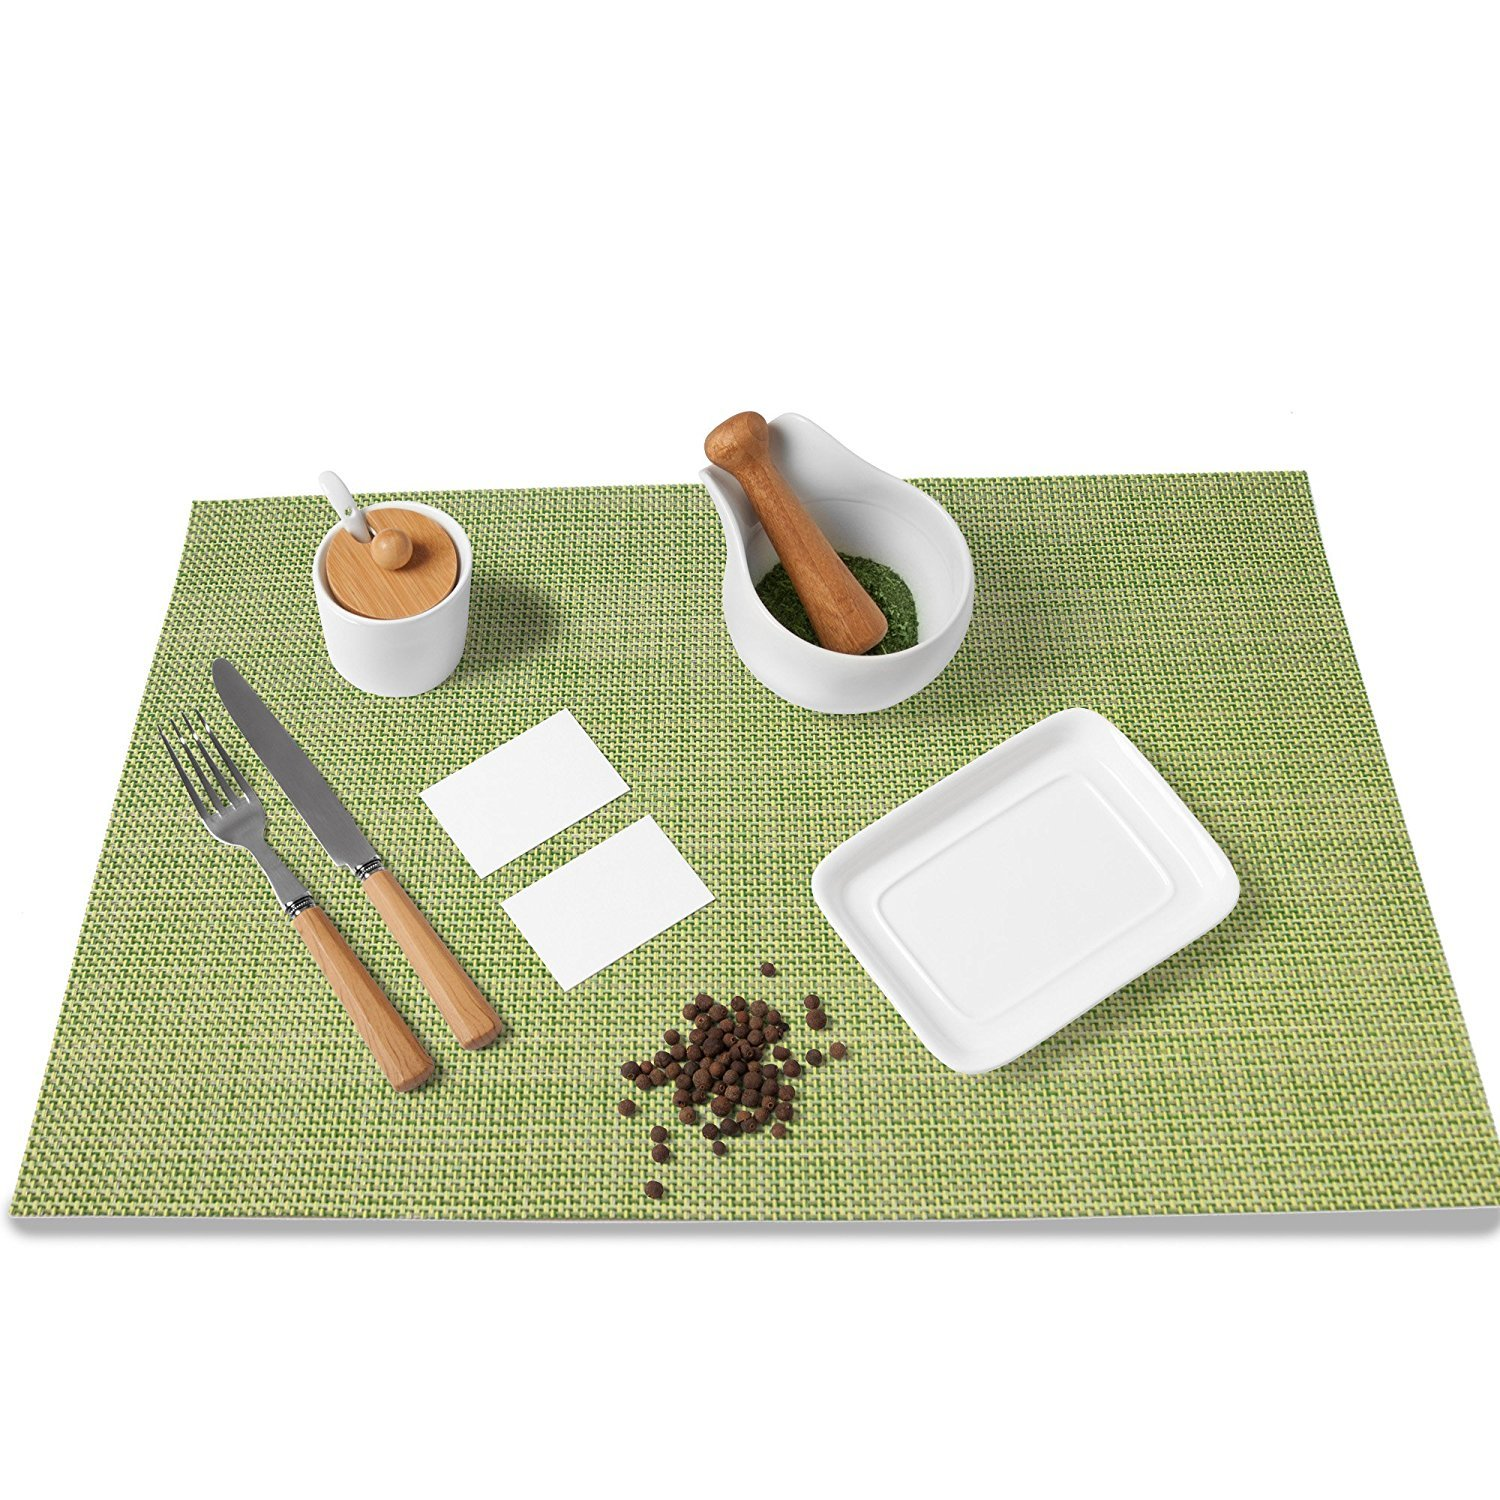 MeeHome Placemats Washable Table Mats for Heat Insulation, Non Slipping and Table Protection (Set of 6) (Green)